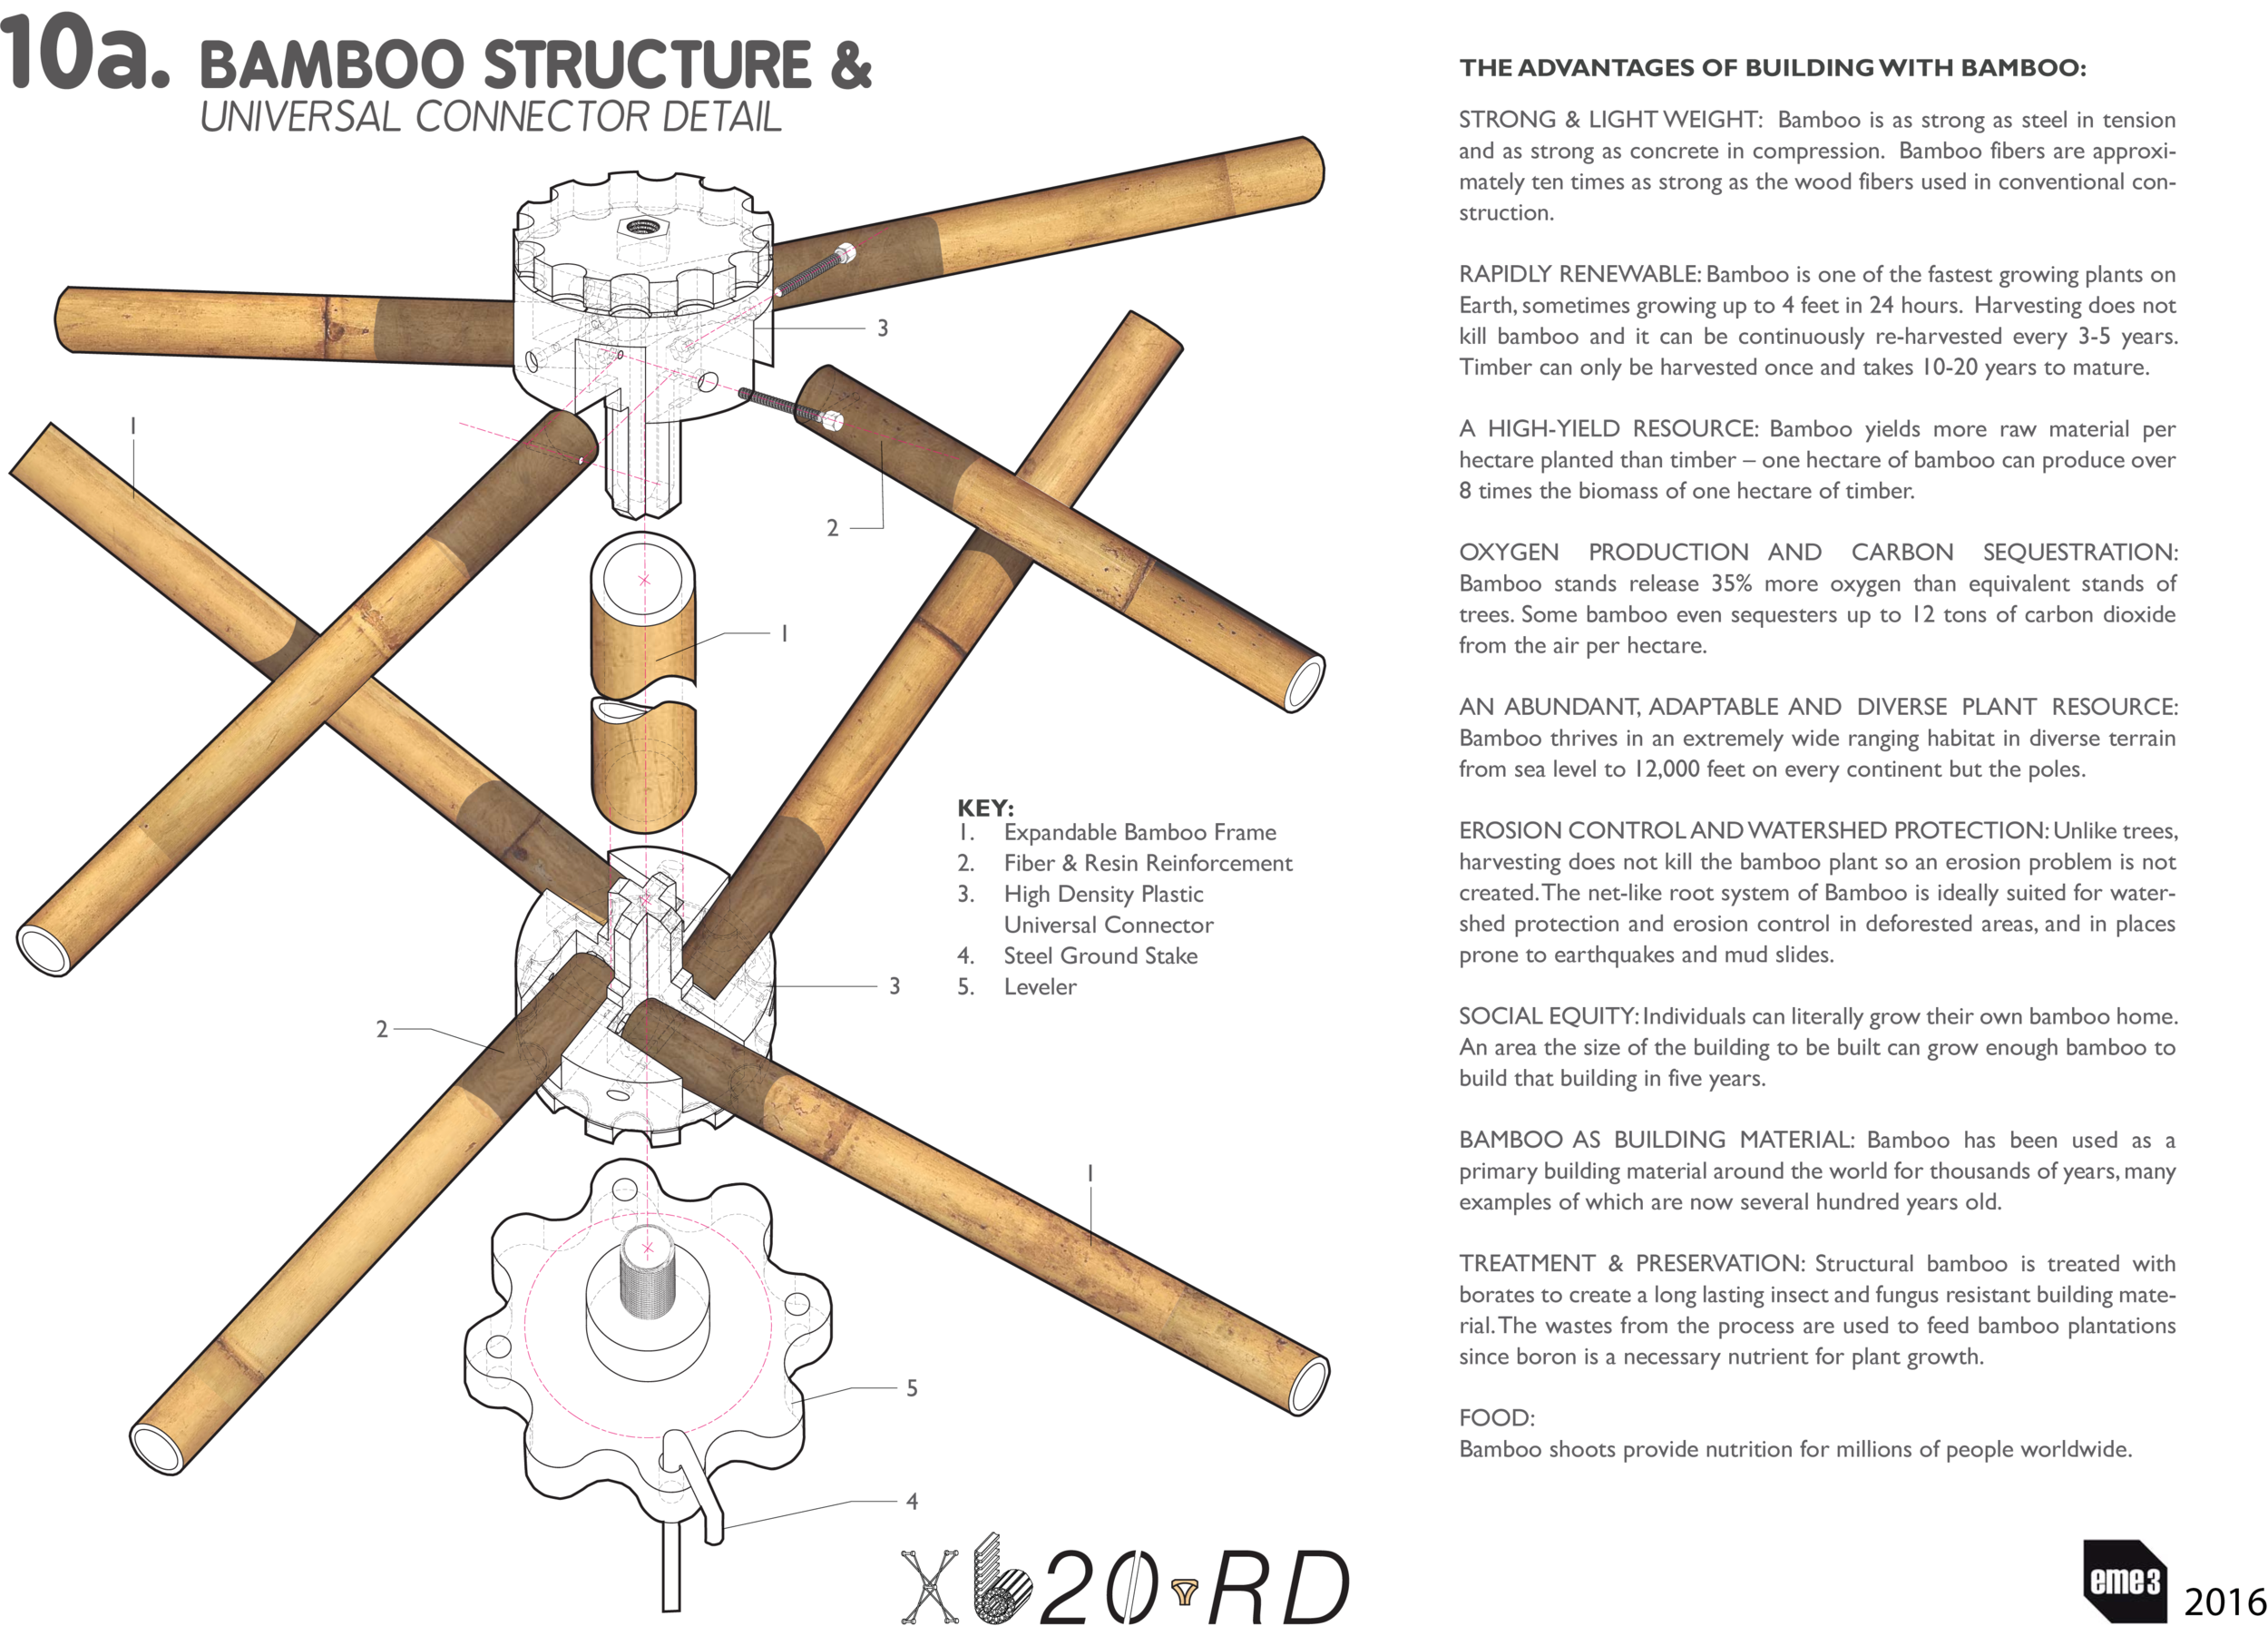 10a_BAMBOO STRUCTURE & UNIVERSAL CONNECTOR DETAIL.png